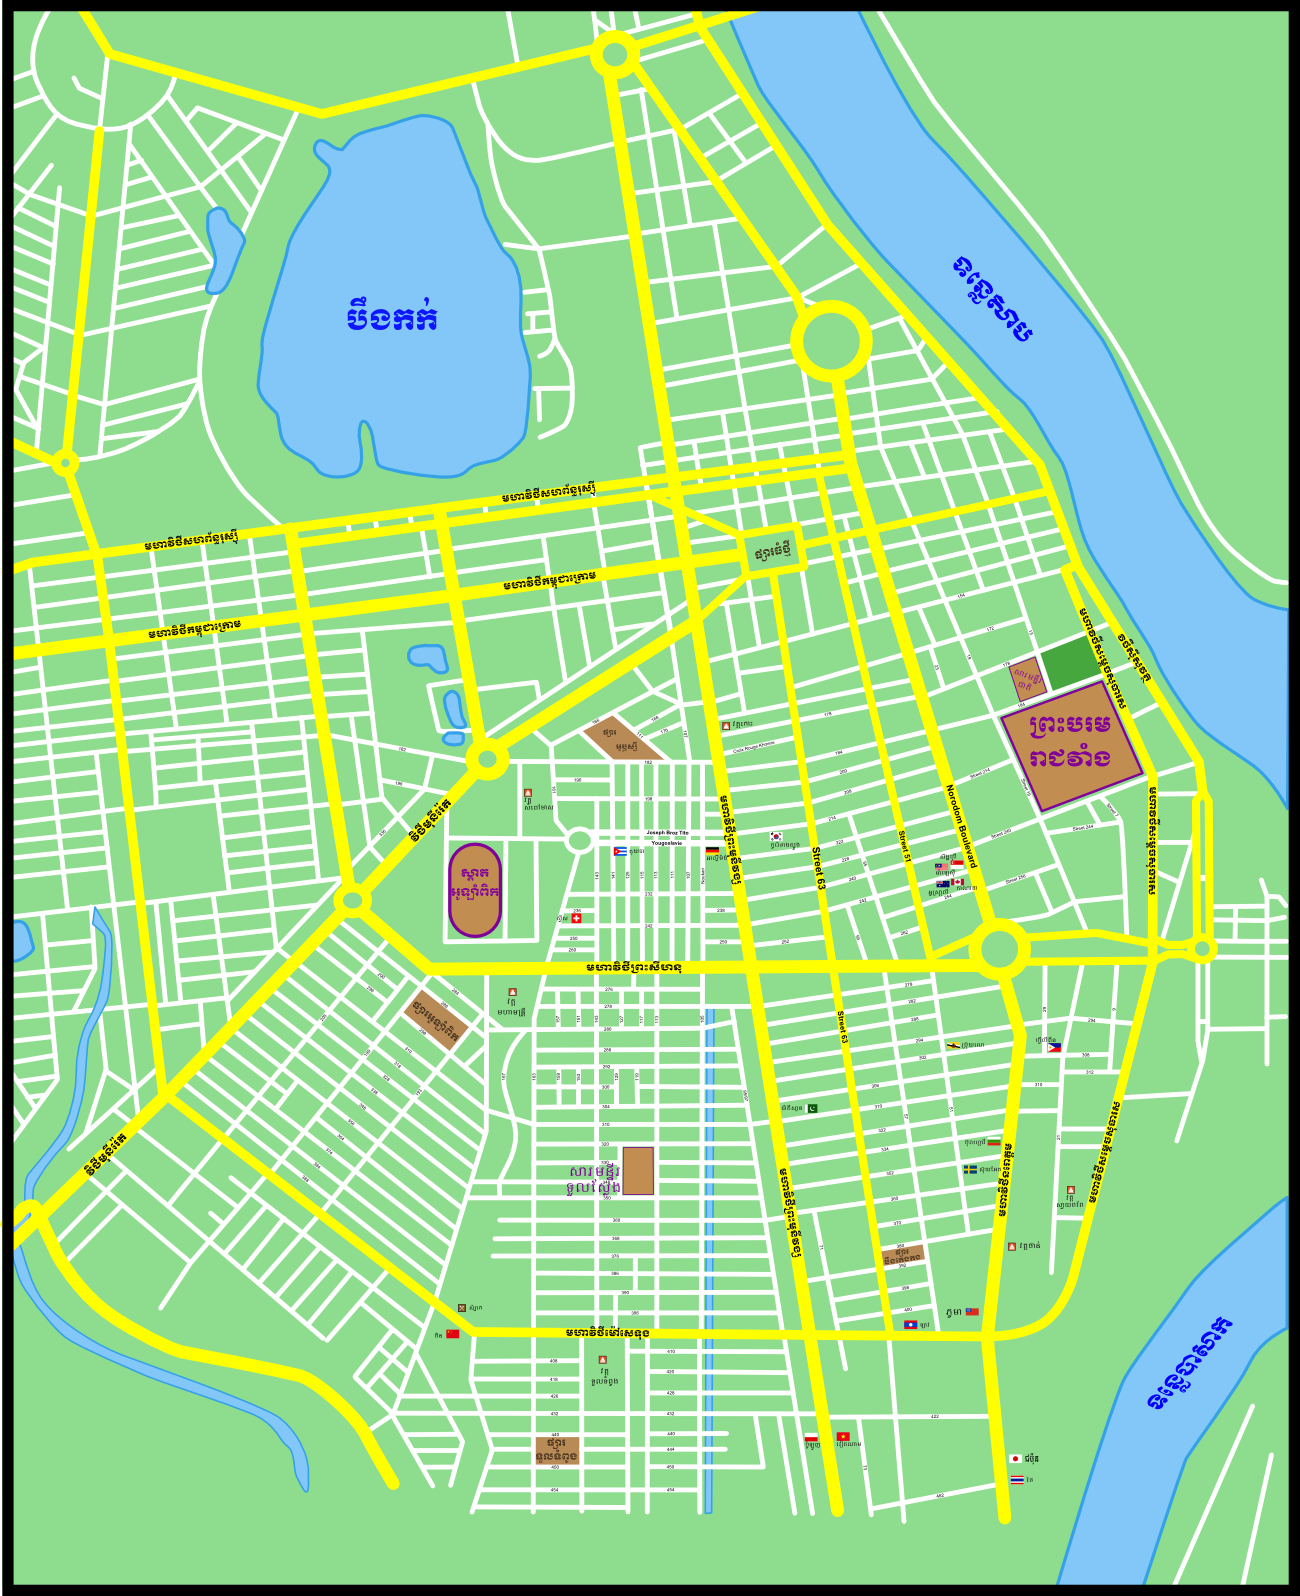 File:Map of Phnom Penh.png - Wikimedia Commons Phnom Penh Map